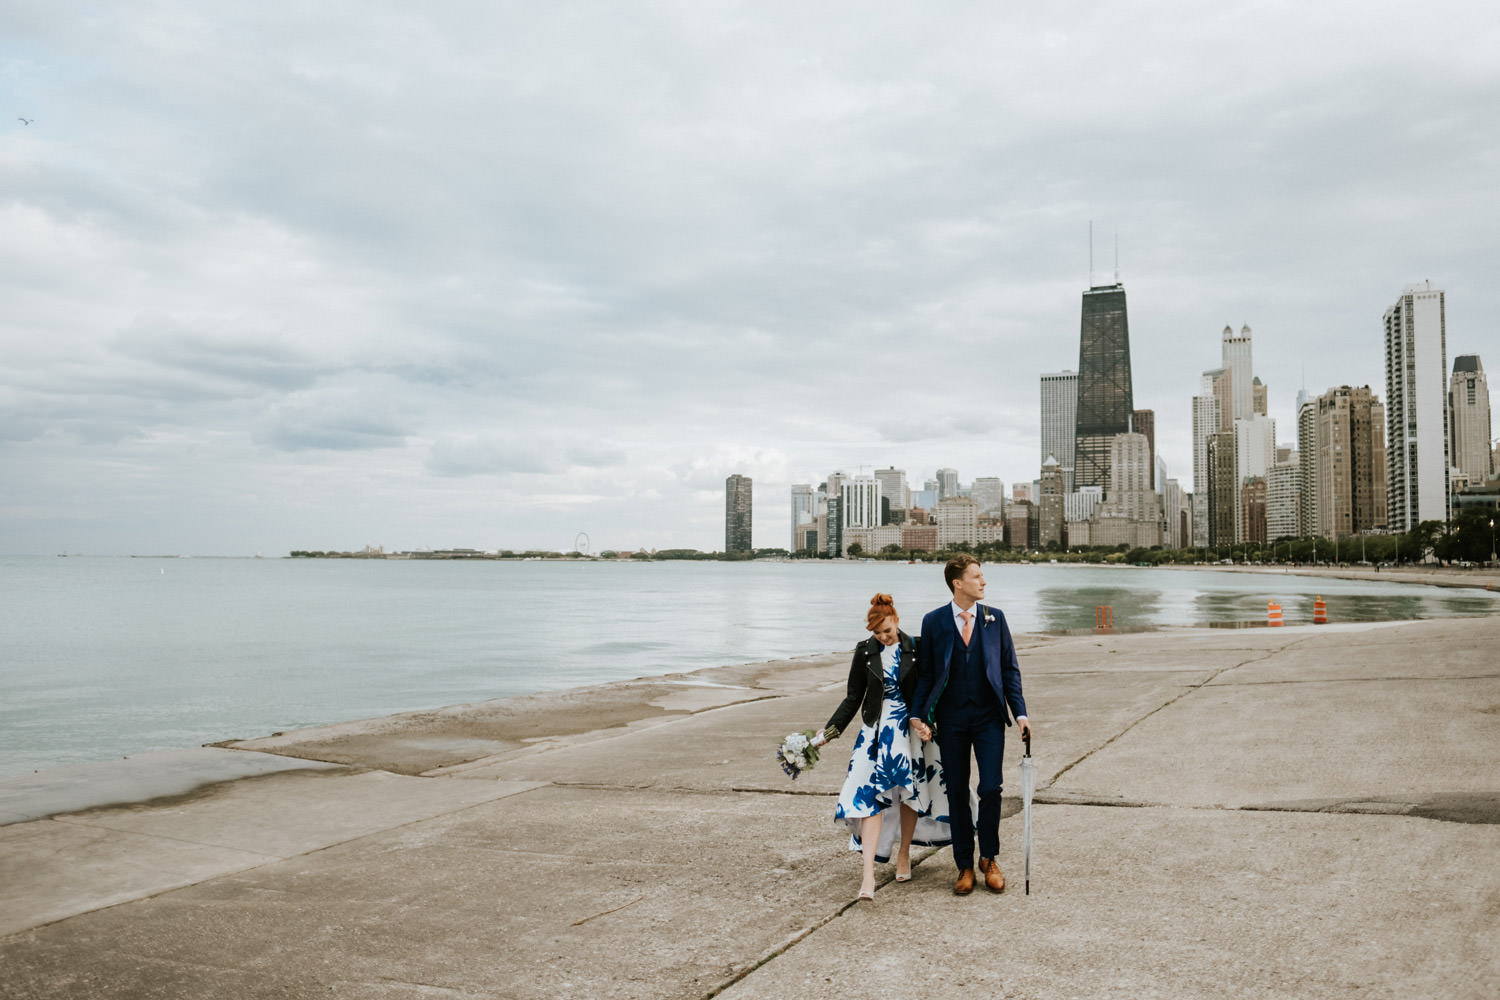 Bride and groom walk down the lake in Chicago during the elopement. The photograph shows Chicago skyline in the backdrop